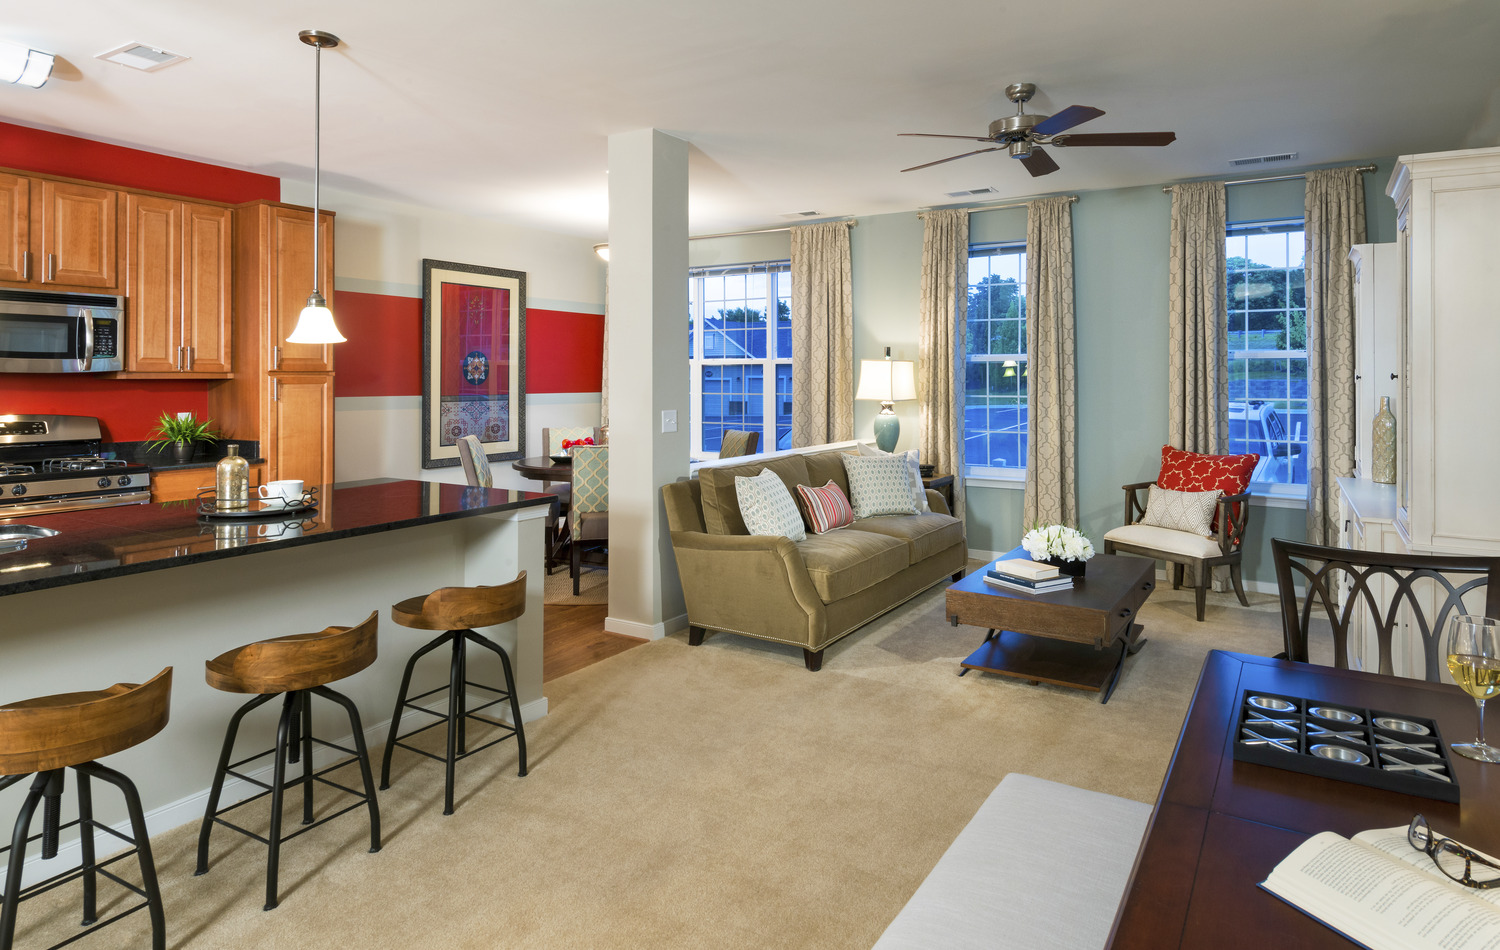 CBG builds Creekstone Village Apartments, a 193-Unit Affordable Garden-Style Apartment Community in Pasadena, MD - Image #5